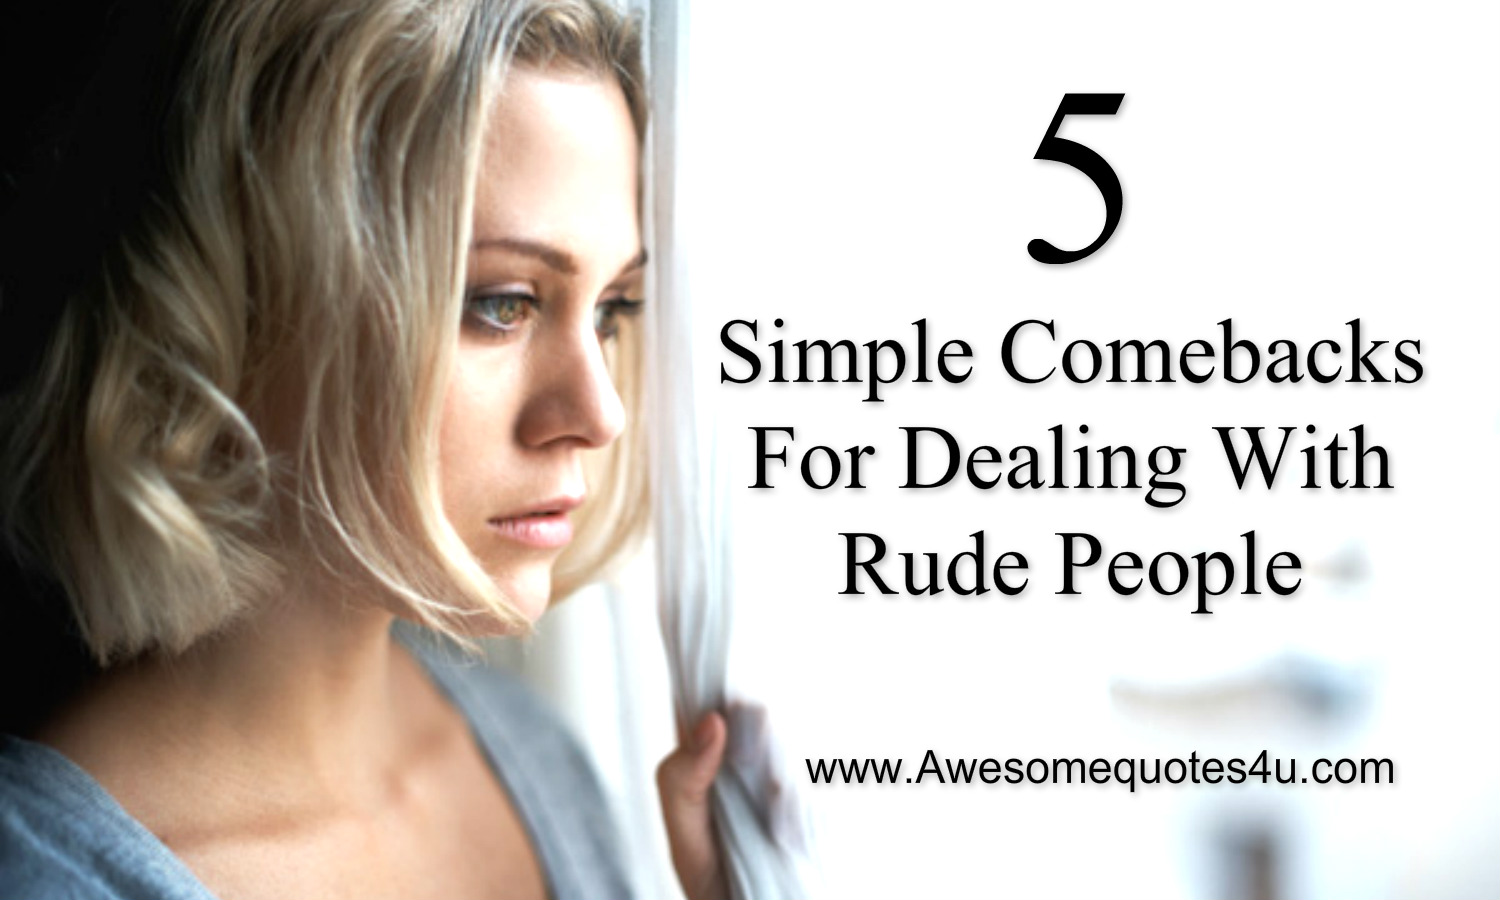 rude people Rude definition is — define rude: being in a rough or unfinished state : crude natural, raw primitive, undevelopeddefine rude: being in a rough or unfinished state : crude natural, raw.